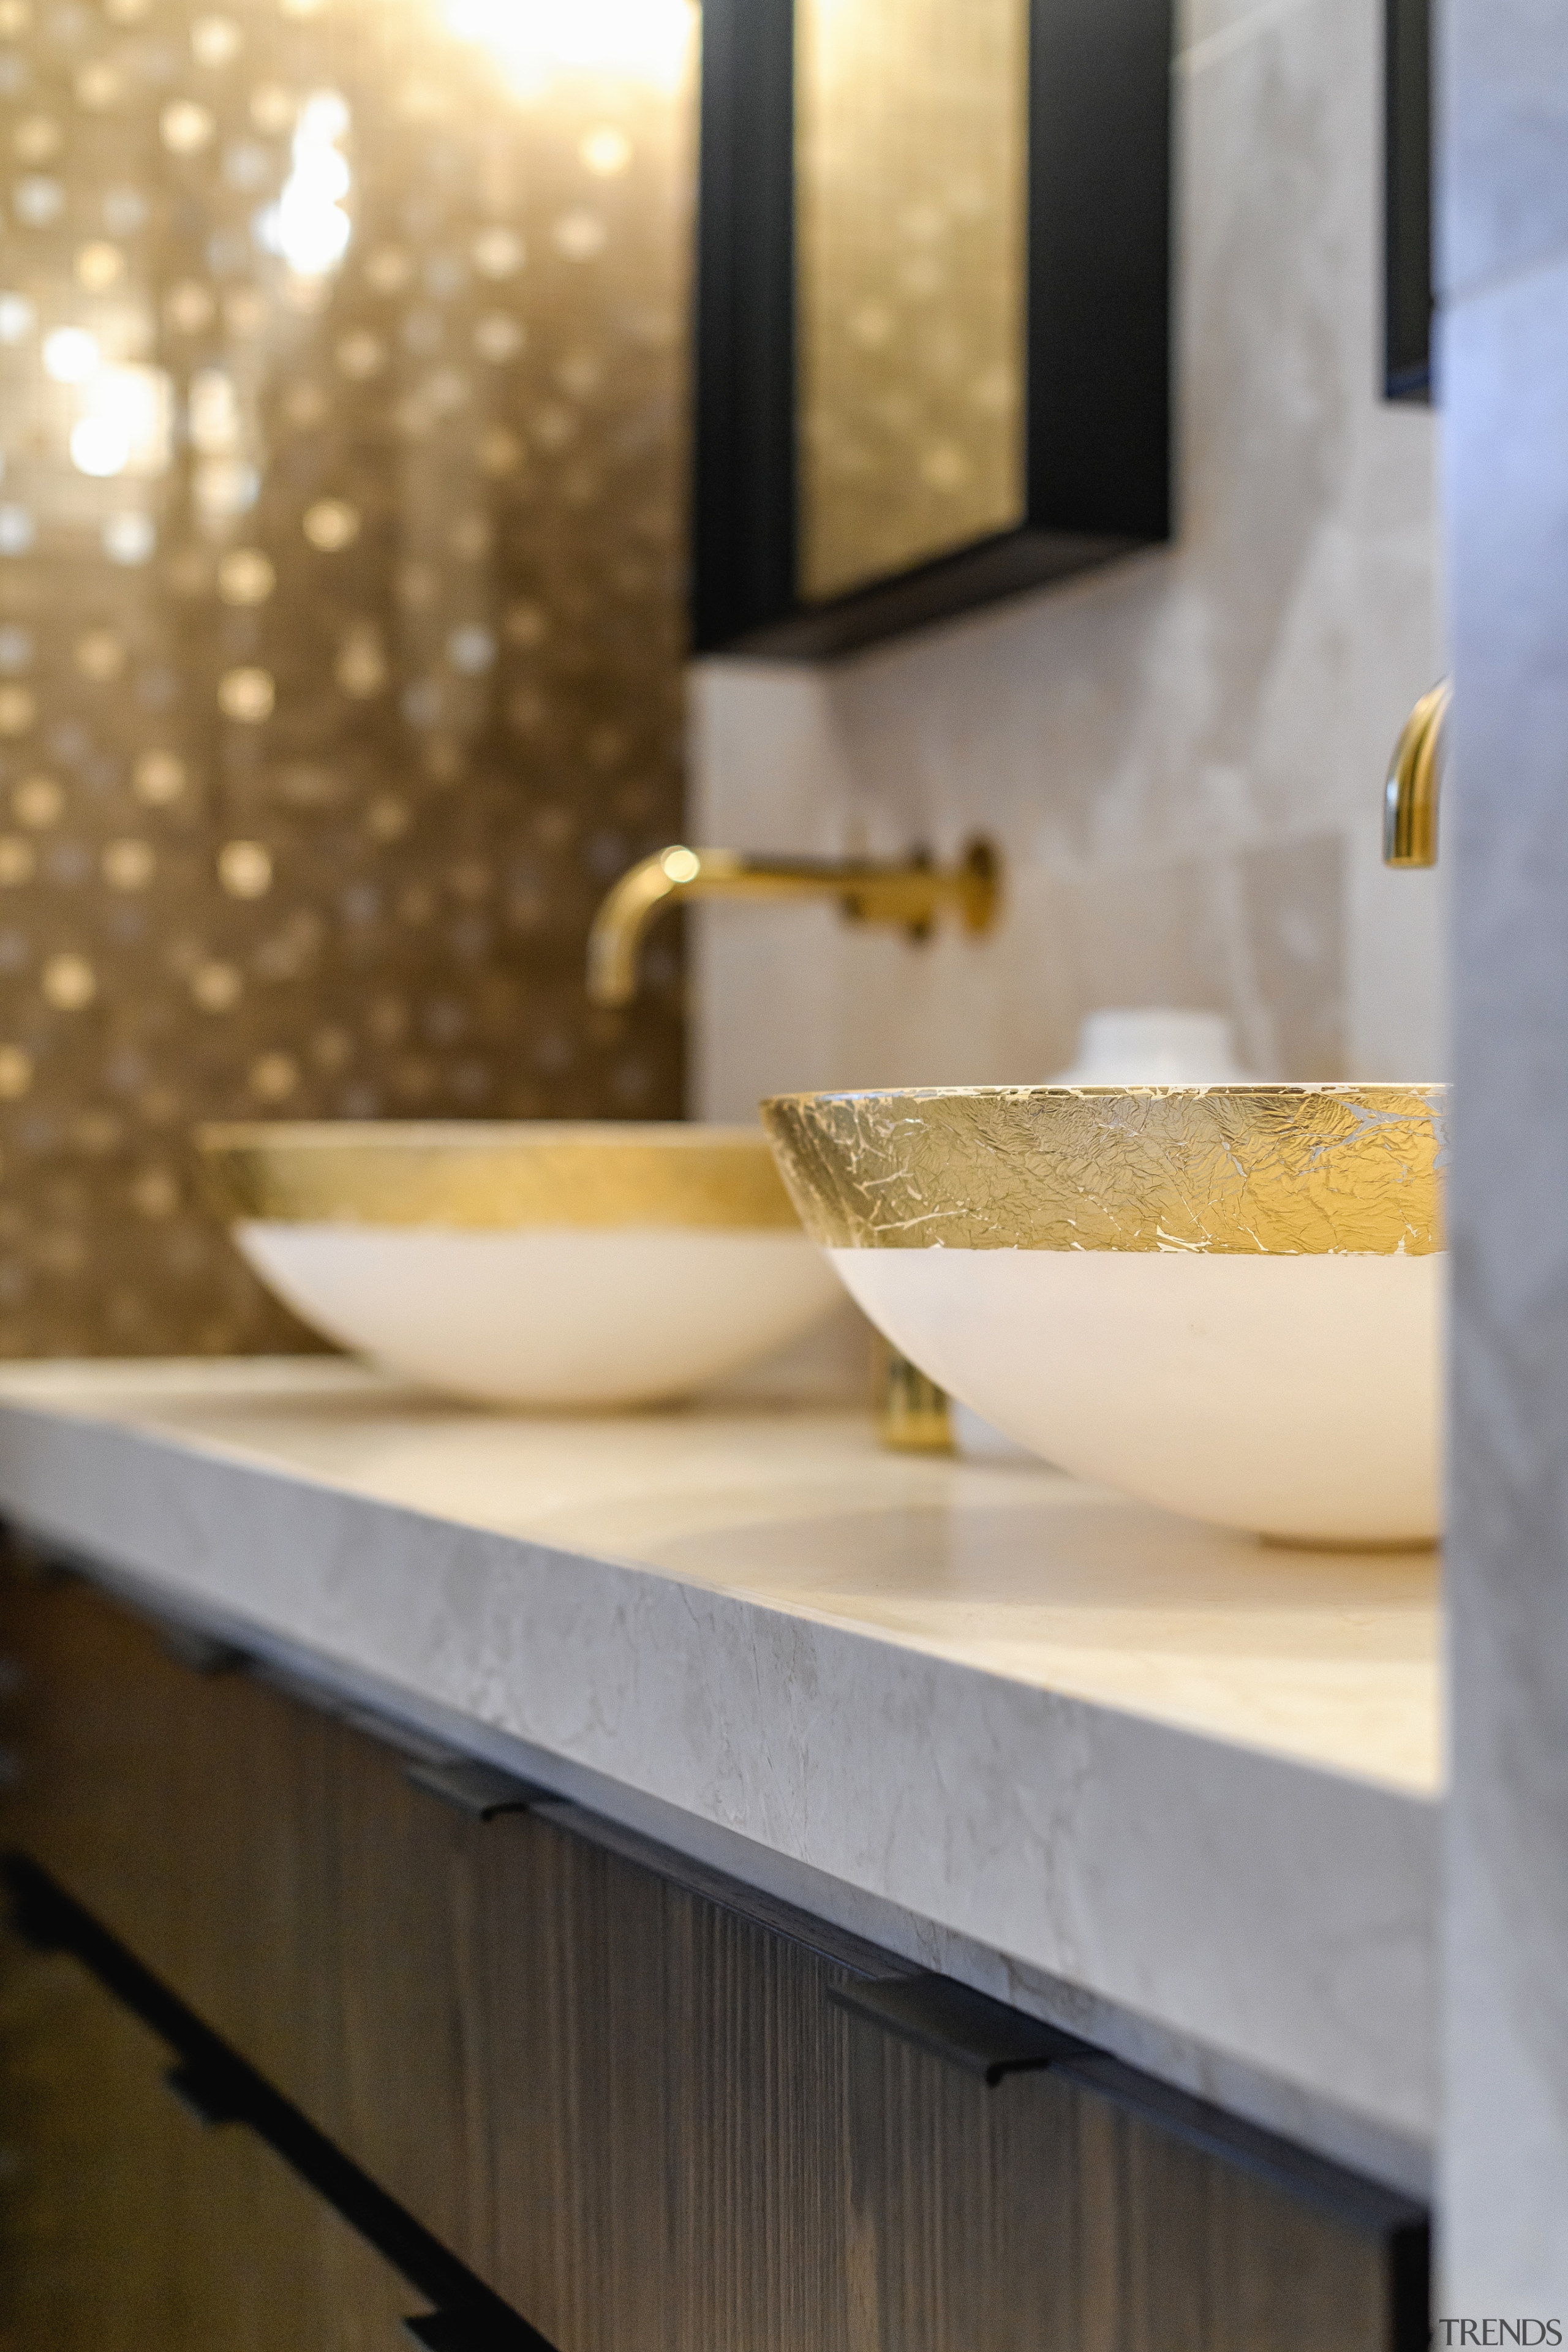 All that glitters – blown glass bowls hand-painted architecture, bathroom, countertop, marble, plumbing fixture, sink, Davinia Sutton, blown glass bowls, marble